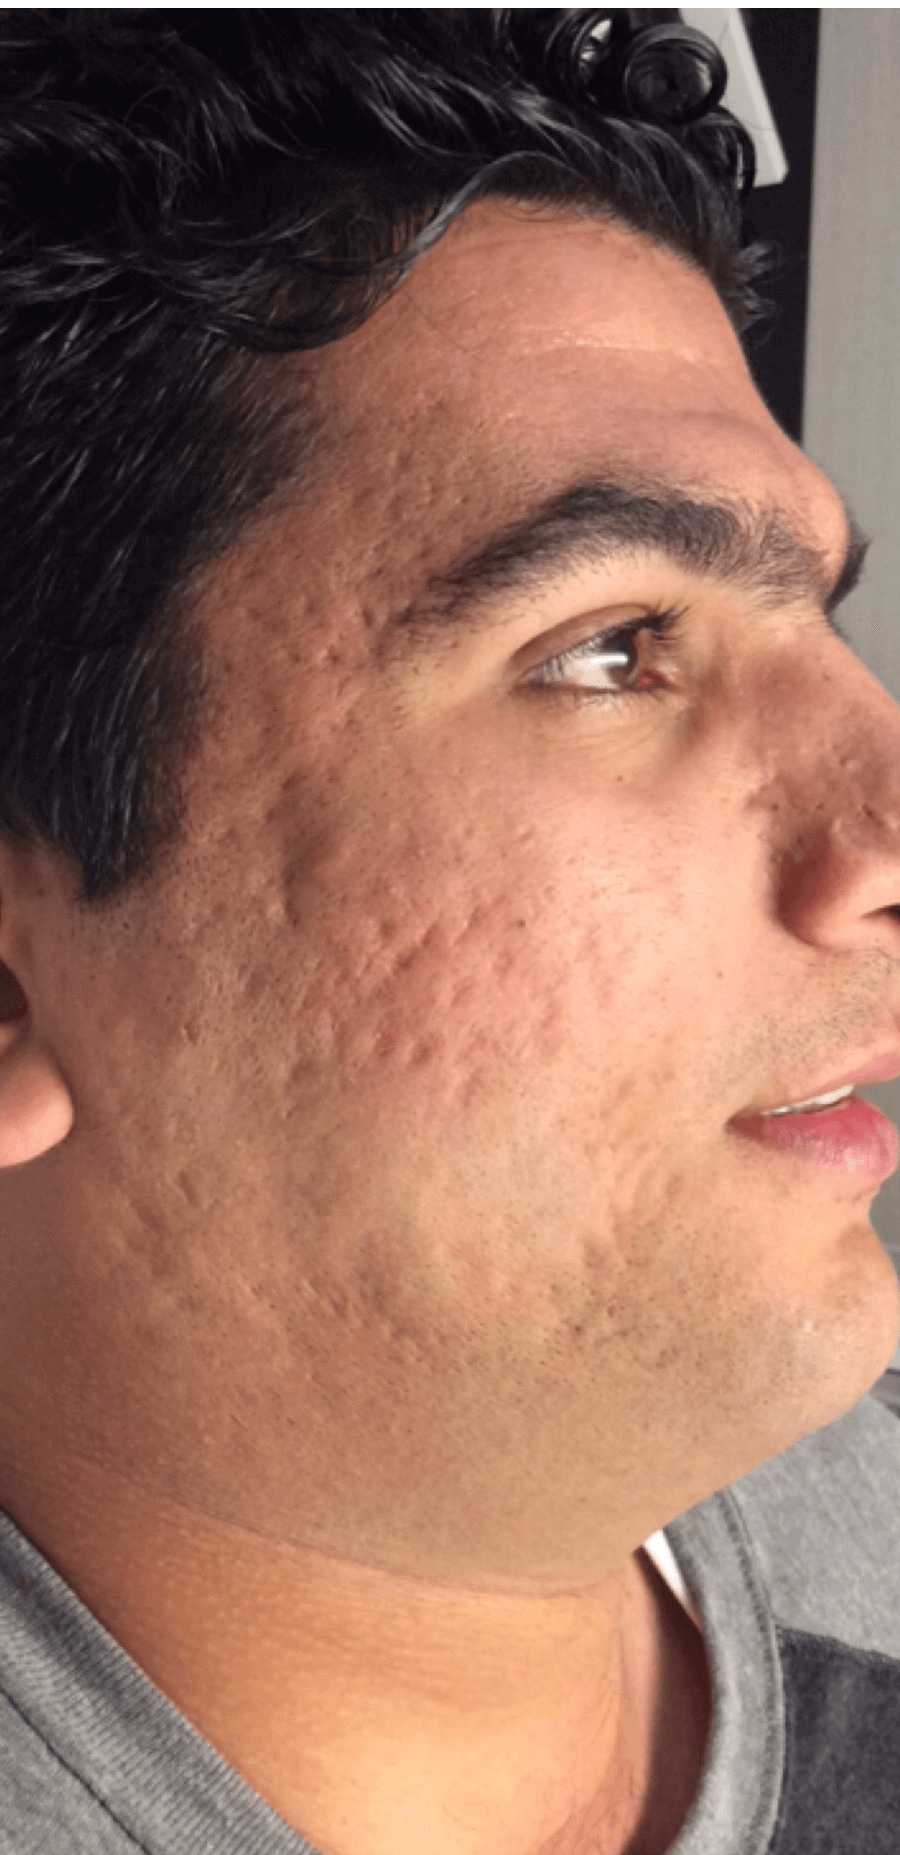 Treatment for Acne Scars Before